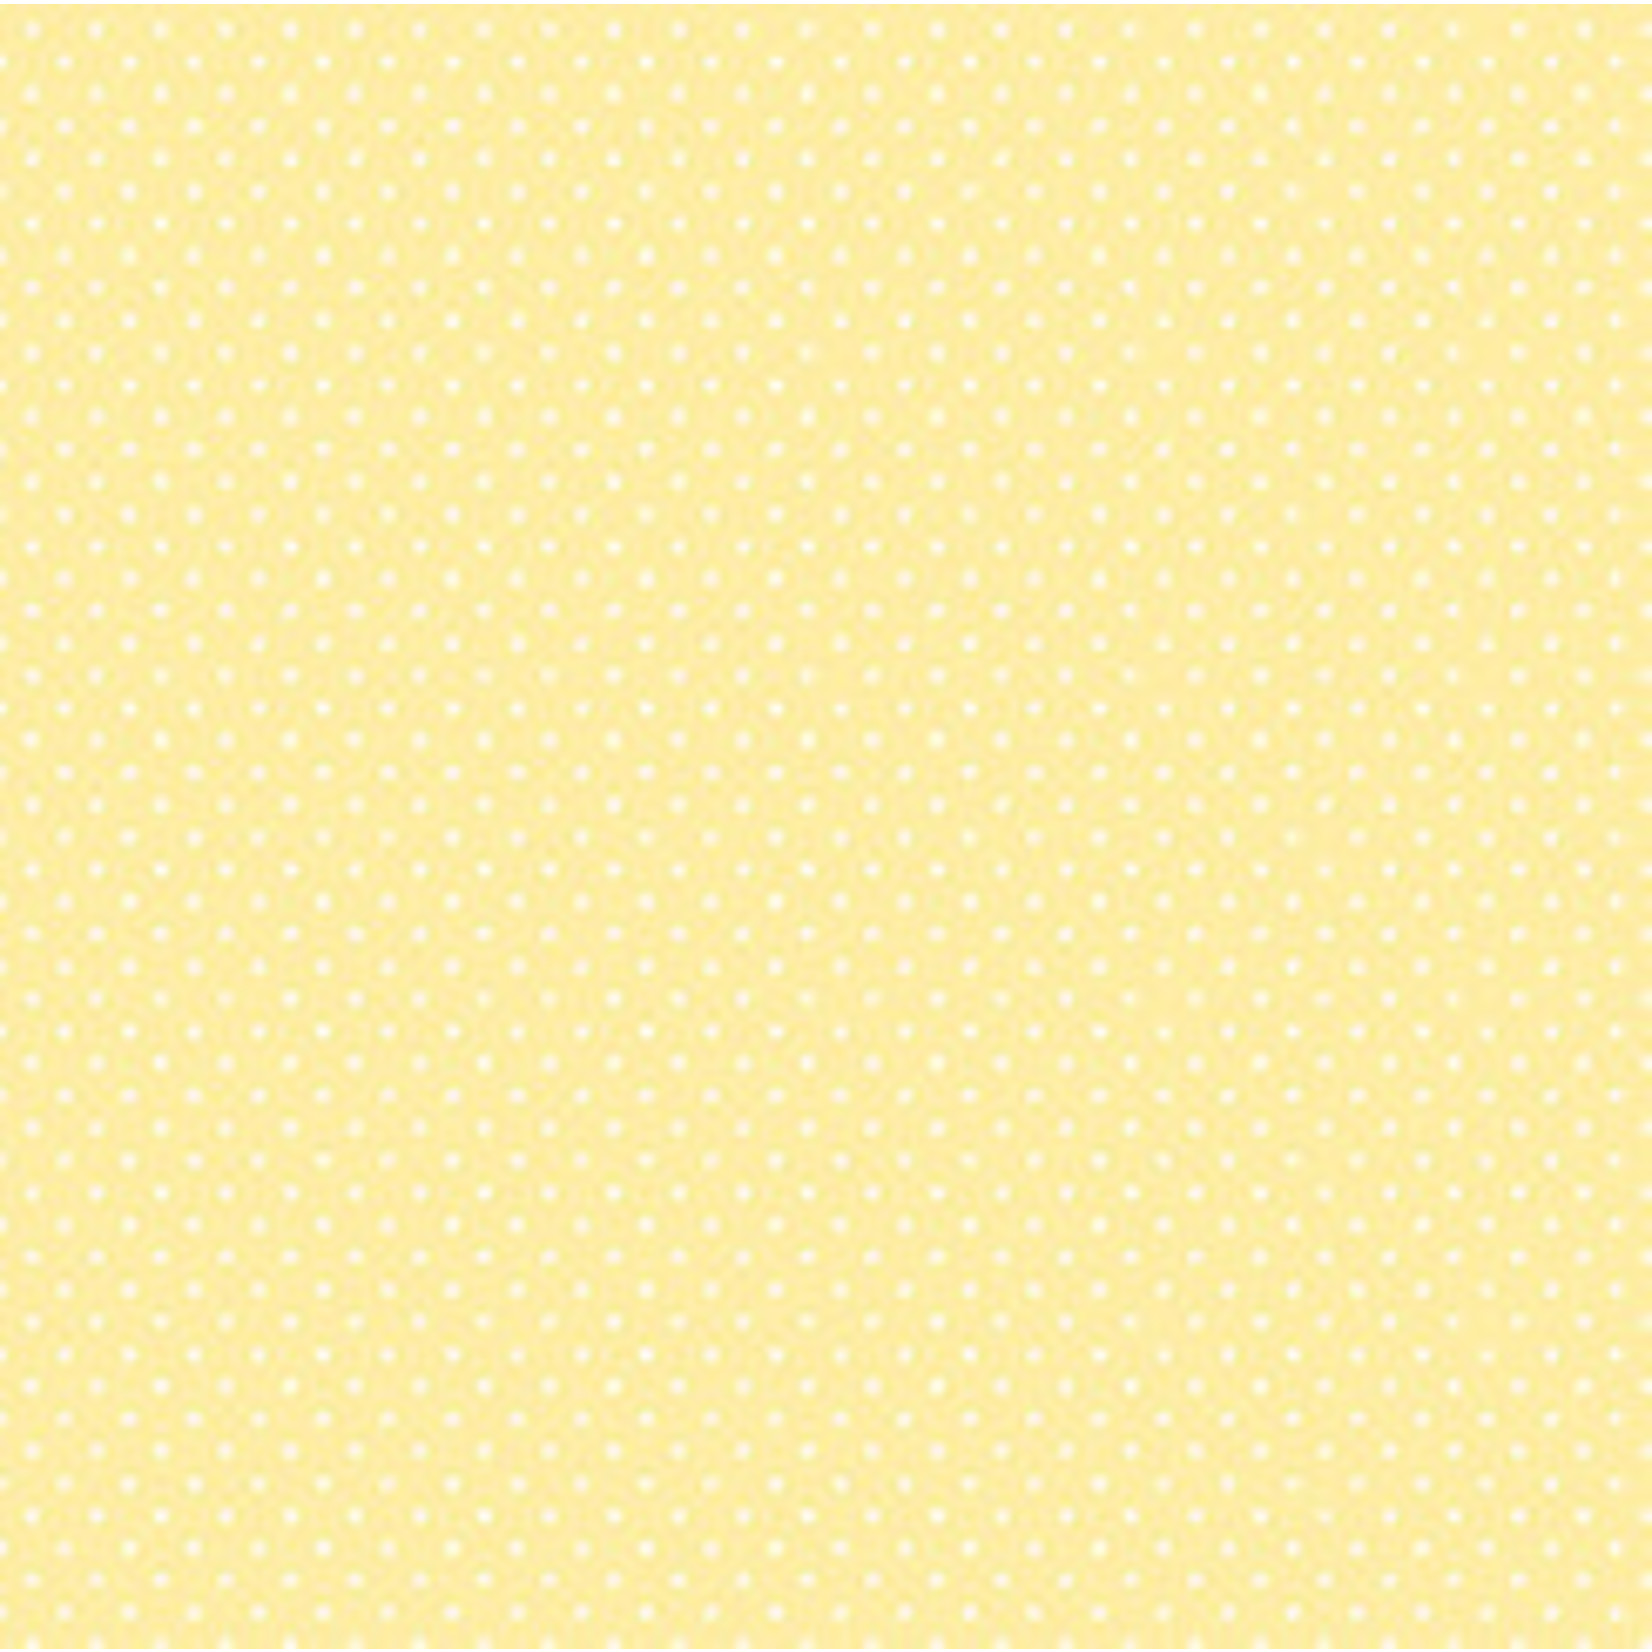 QUILTING TREASURES SORBETS - Mini Dot Yellow, /cm or $20